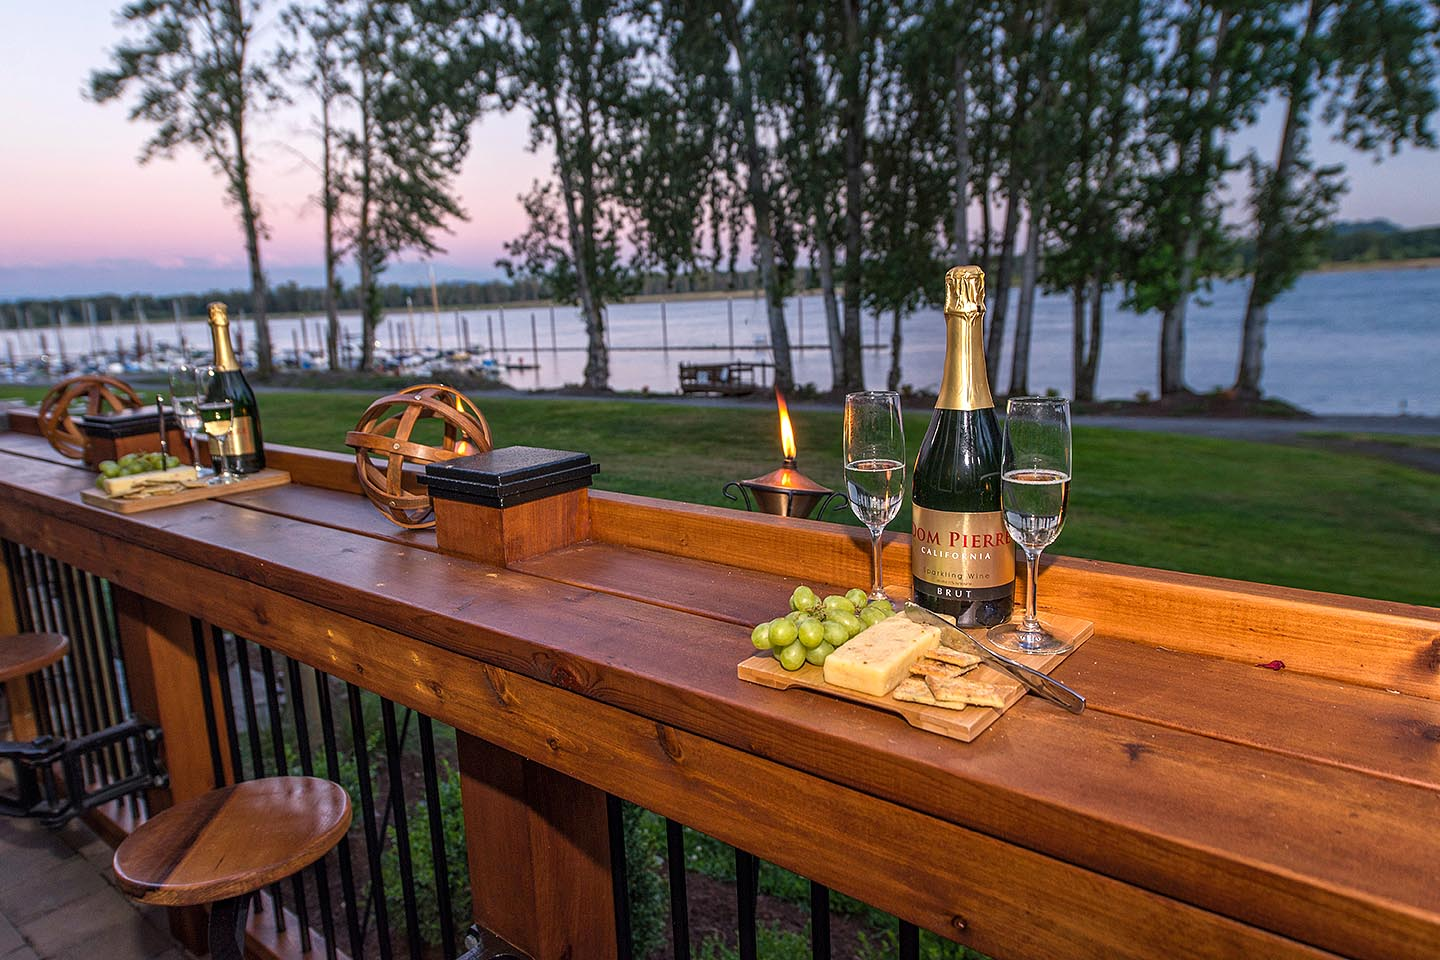 Galley bar seating with a view - Appetizer heaven!